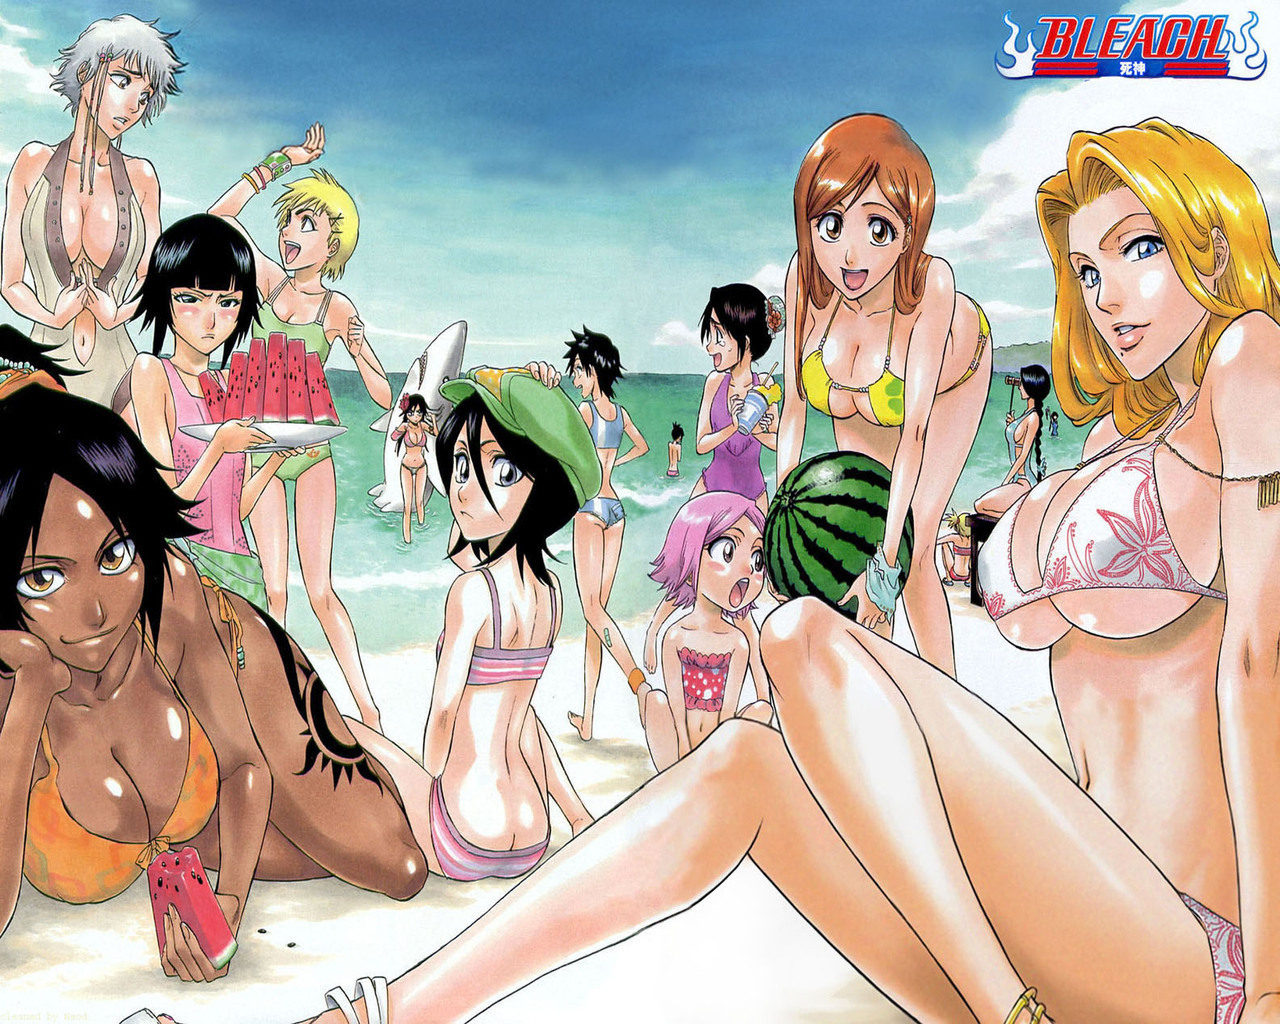 Bleach Girls at the strand